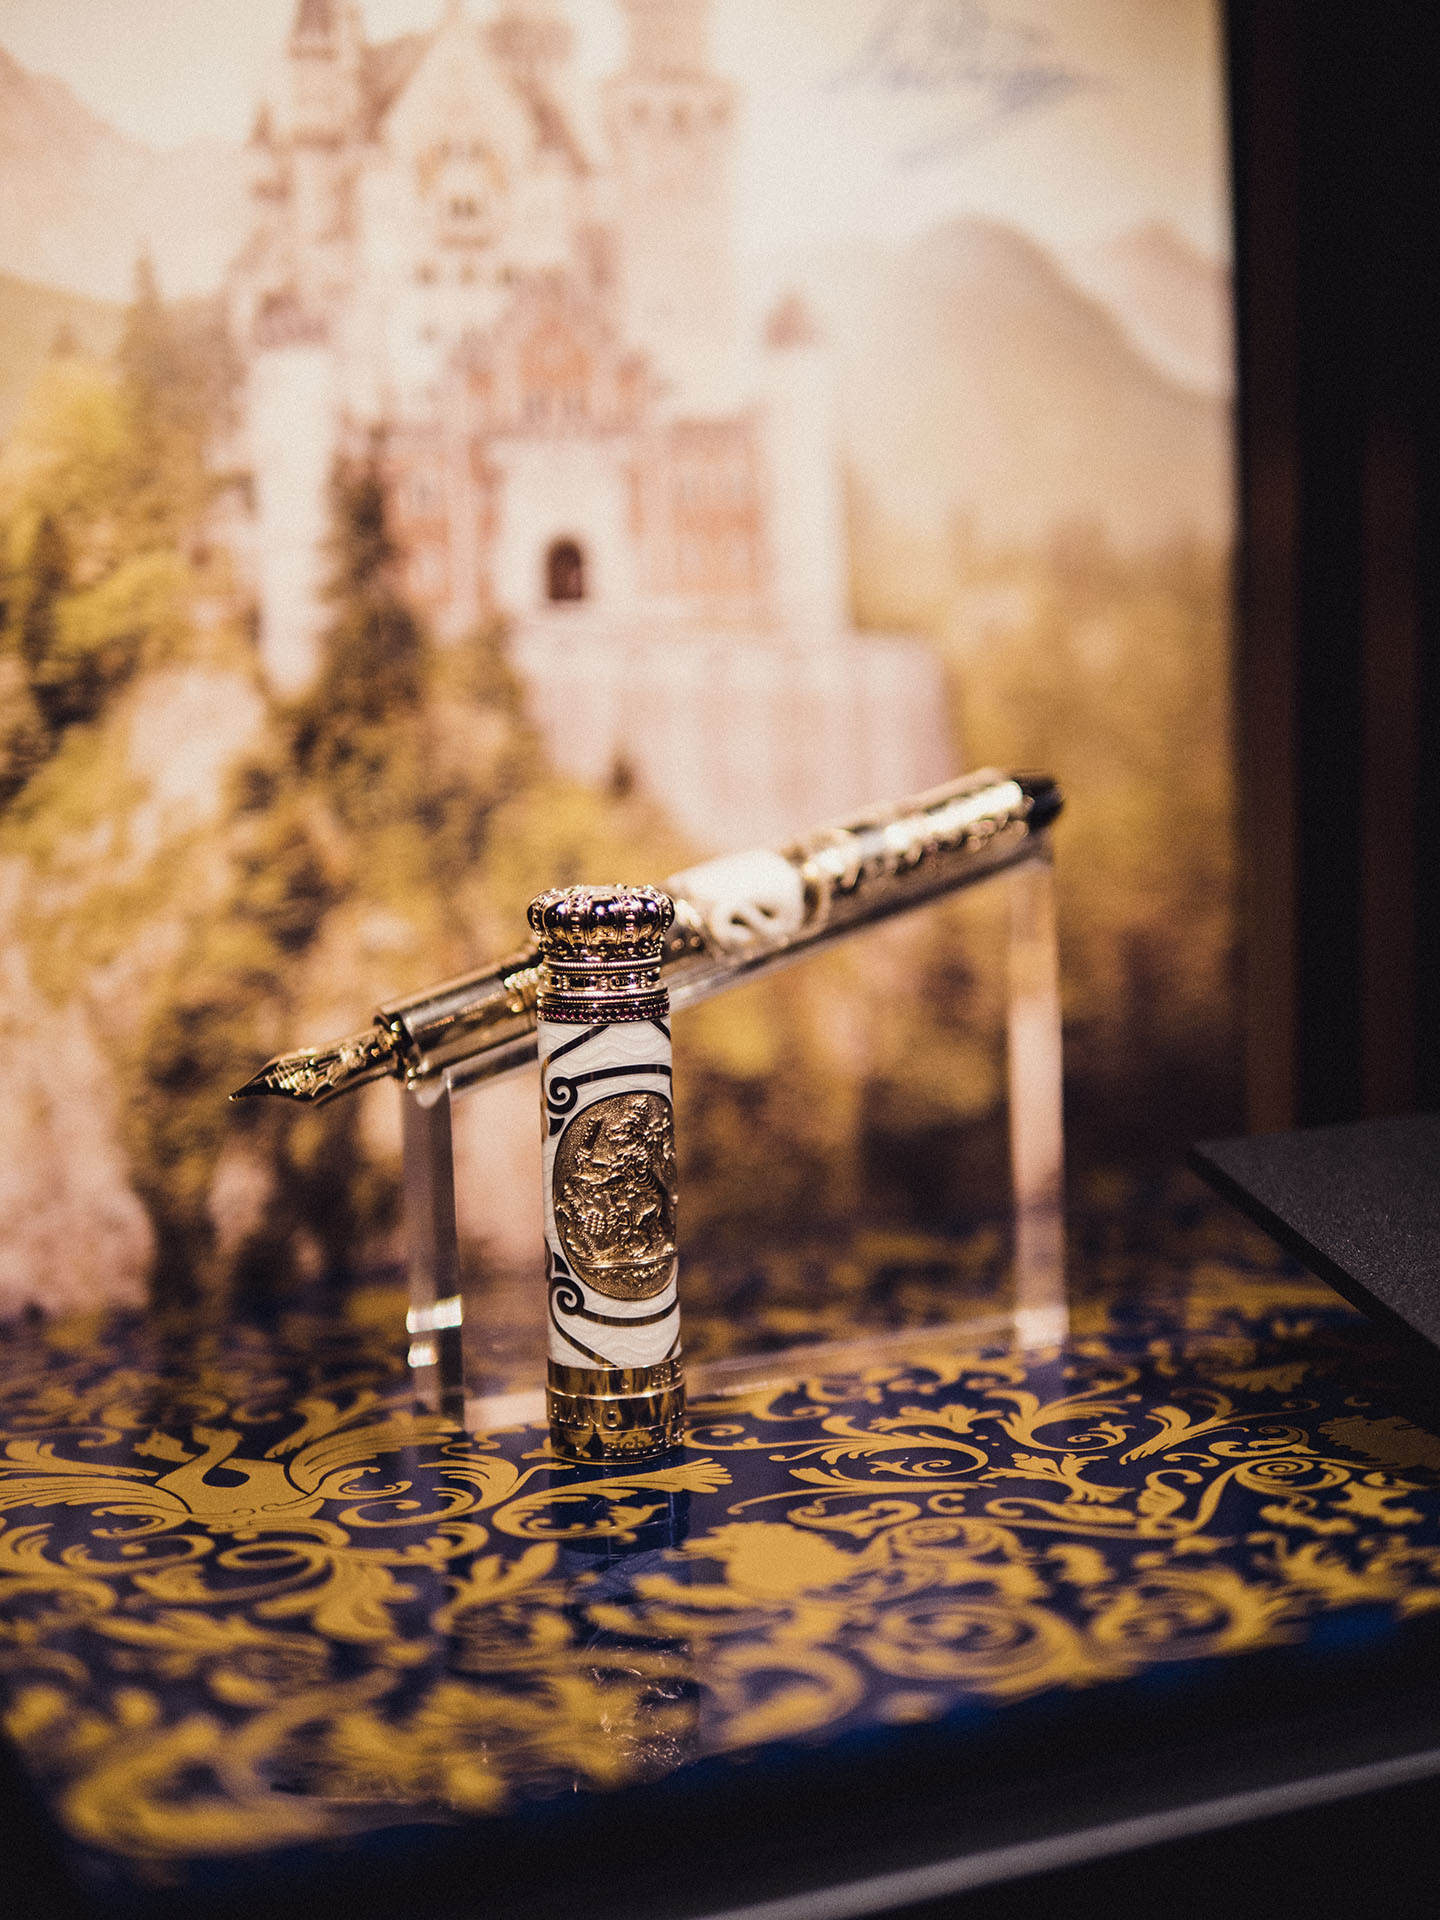 Patron-of-Art-Homage-to-Ludwig-limited-edition-montblanc-2018-jürgen-wesseler-pen-füller